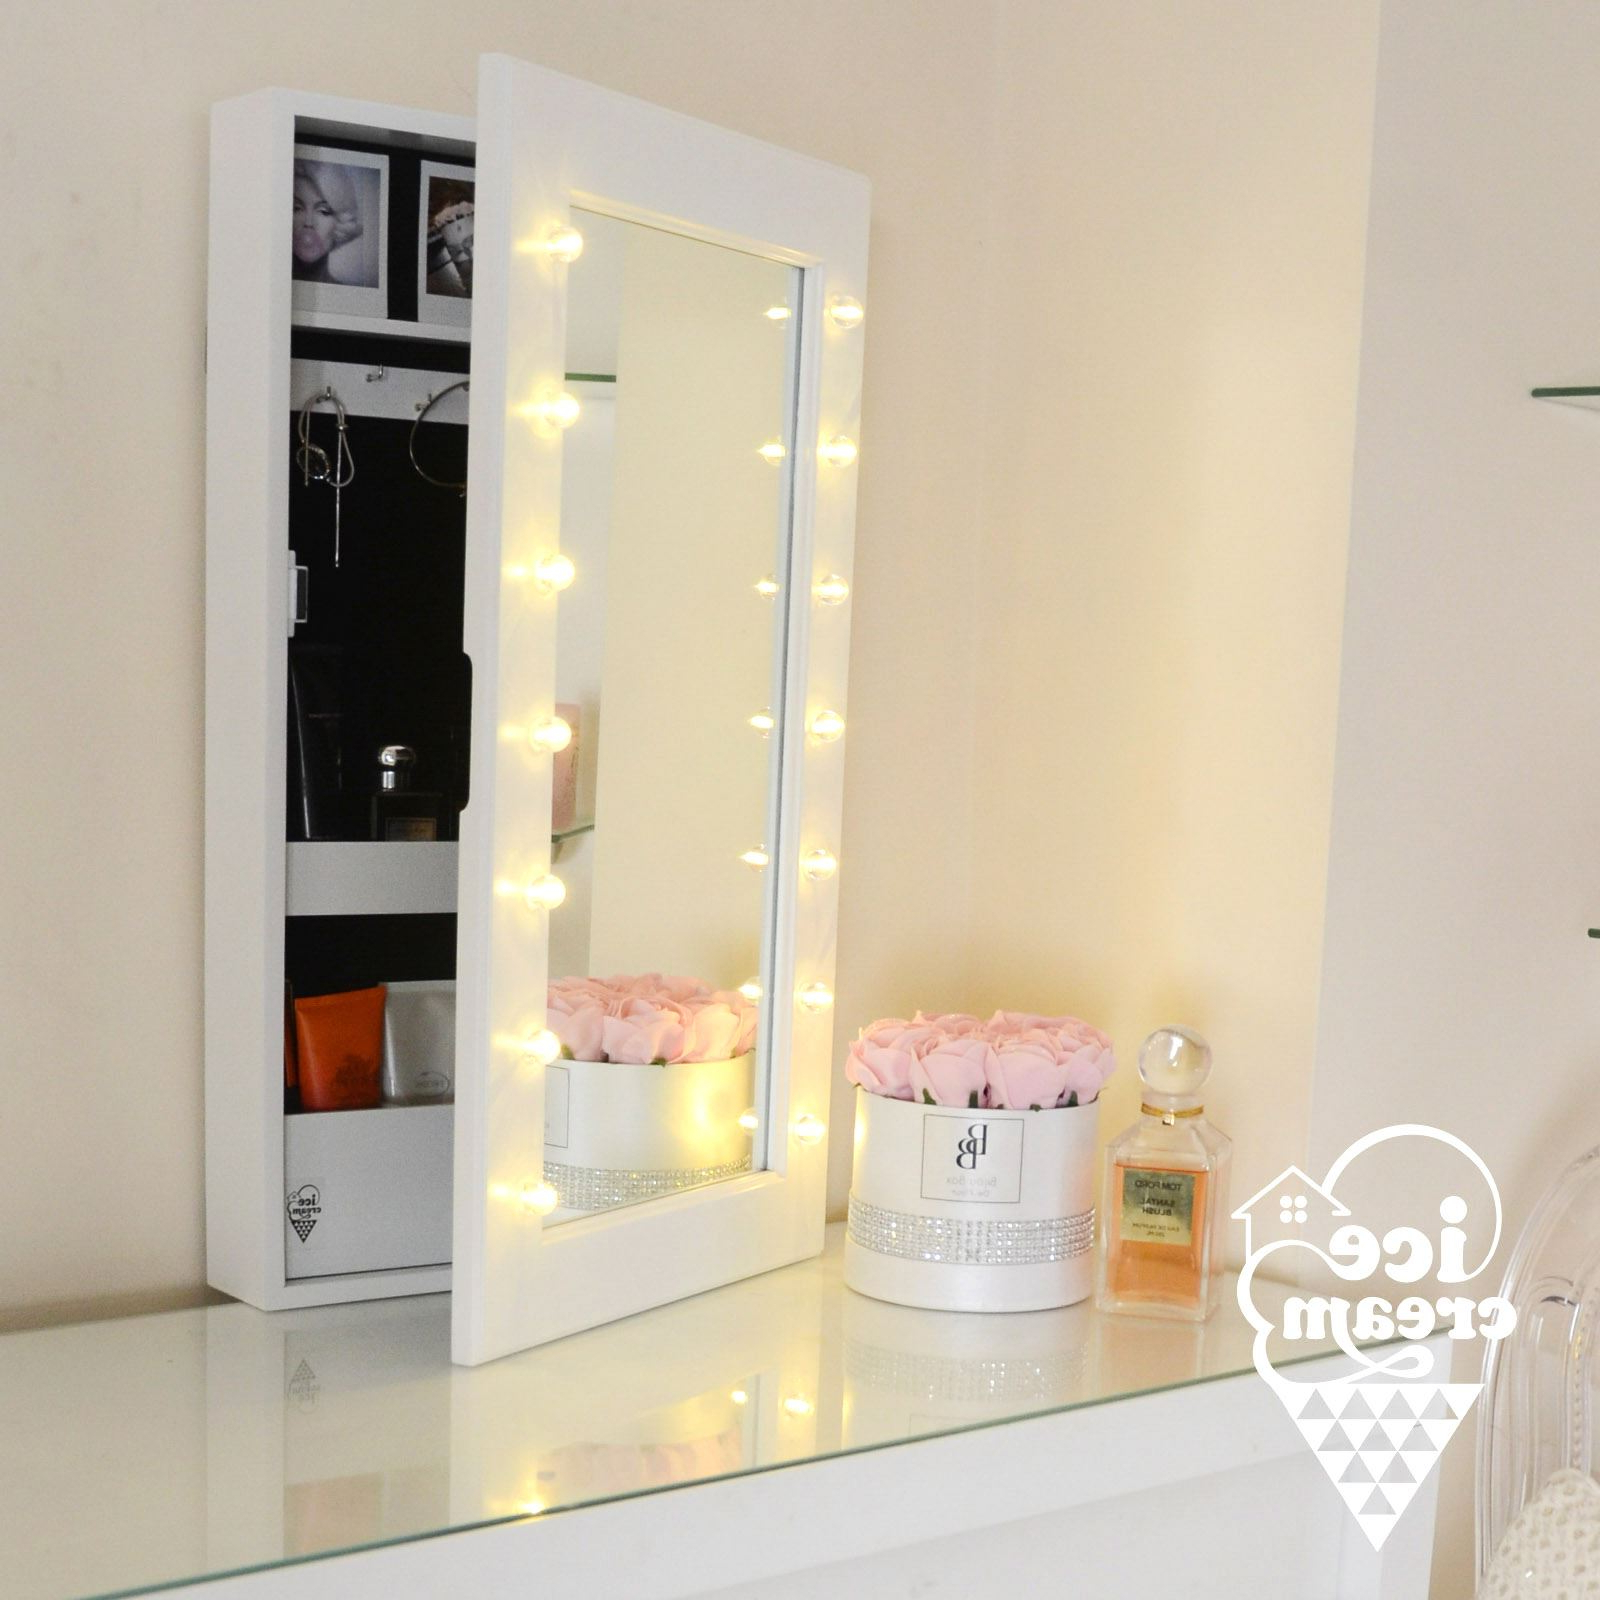 Details About White Desktop / Wall Mounted Jewellery Mirror Cabinet With Led Lights Storage Intended For Popular Wall Mirrors With Storages (View 4 of 20)